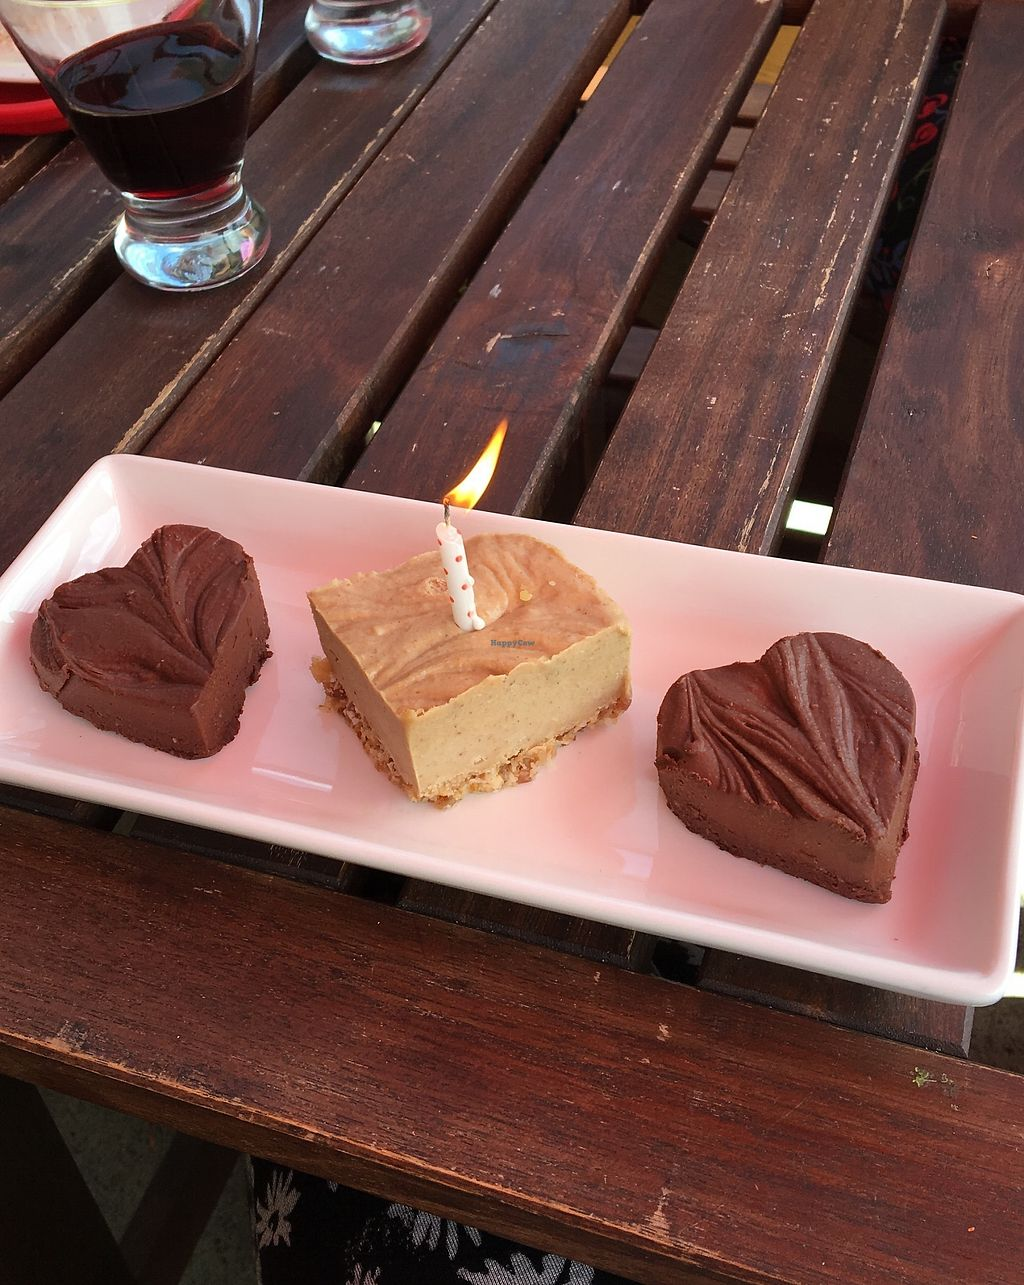 """Photo of Cafe by Tao  by <a href=""""/members/profile/reneeveg"""">reneeveg</a> <br/>My birthday fudge and there mesquite bar which tasted like caramel and coconut..so good!! <br/> April 6, 2018  - <a href='/contact/abuse/image/33858/381379'>Report</a>"""